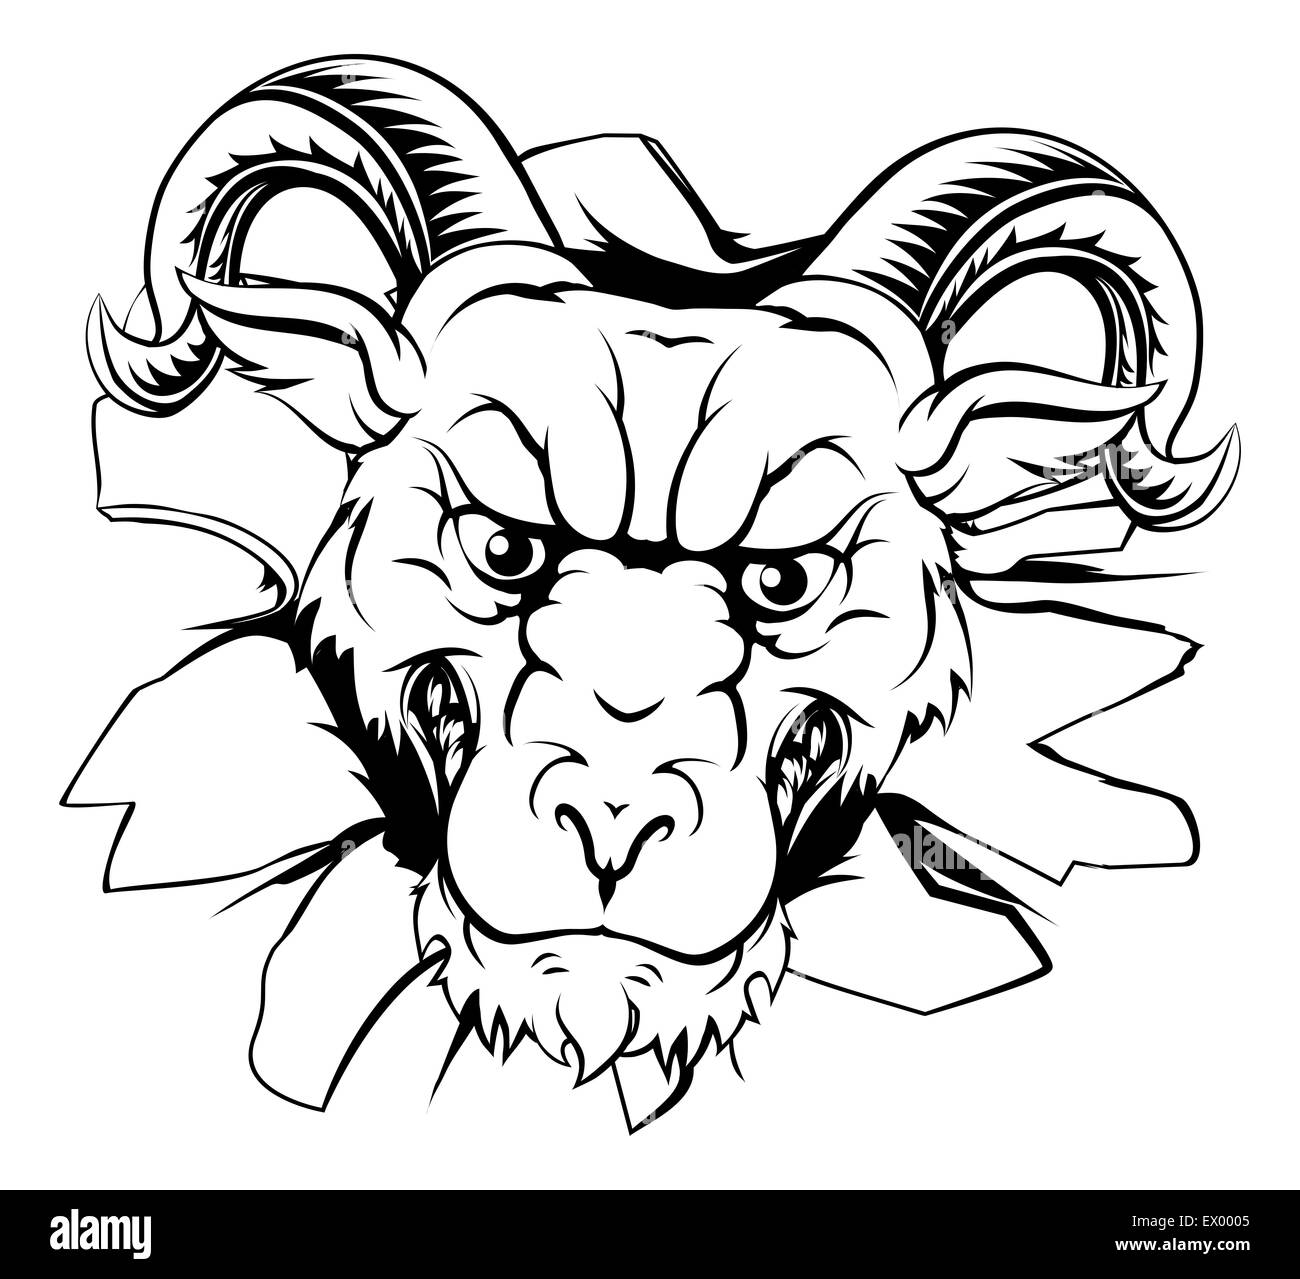 an illustration of a tough looking ram animal sports mascot or